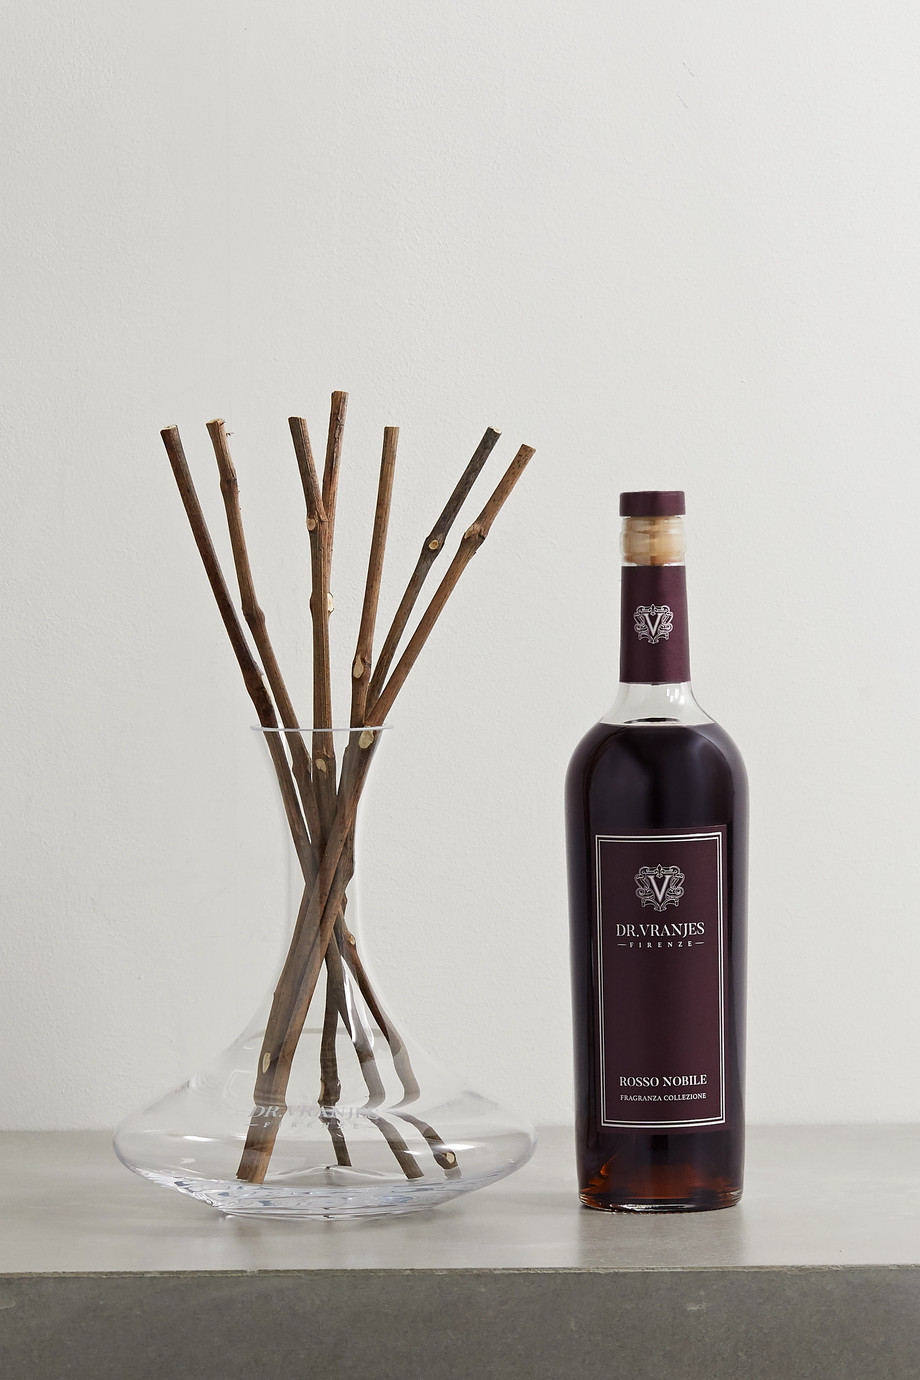 Dr. Vranjes Firenze Rosso Nobile reed diffuser and decanter, 750ml